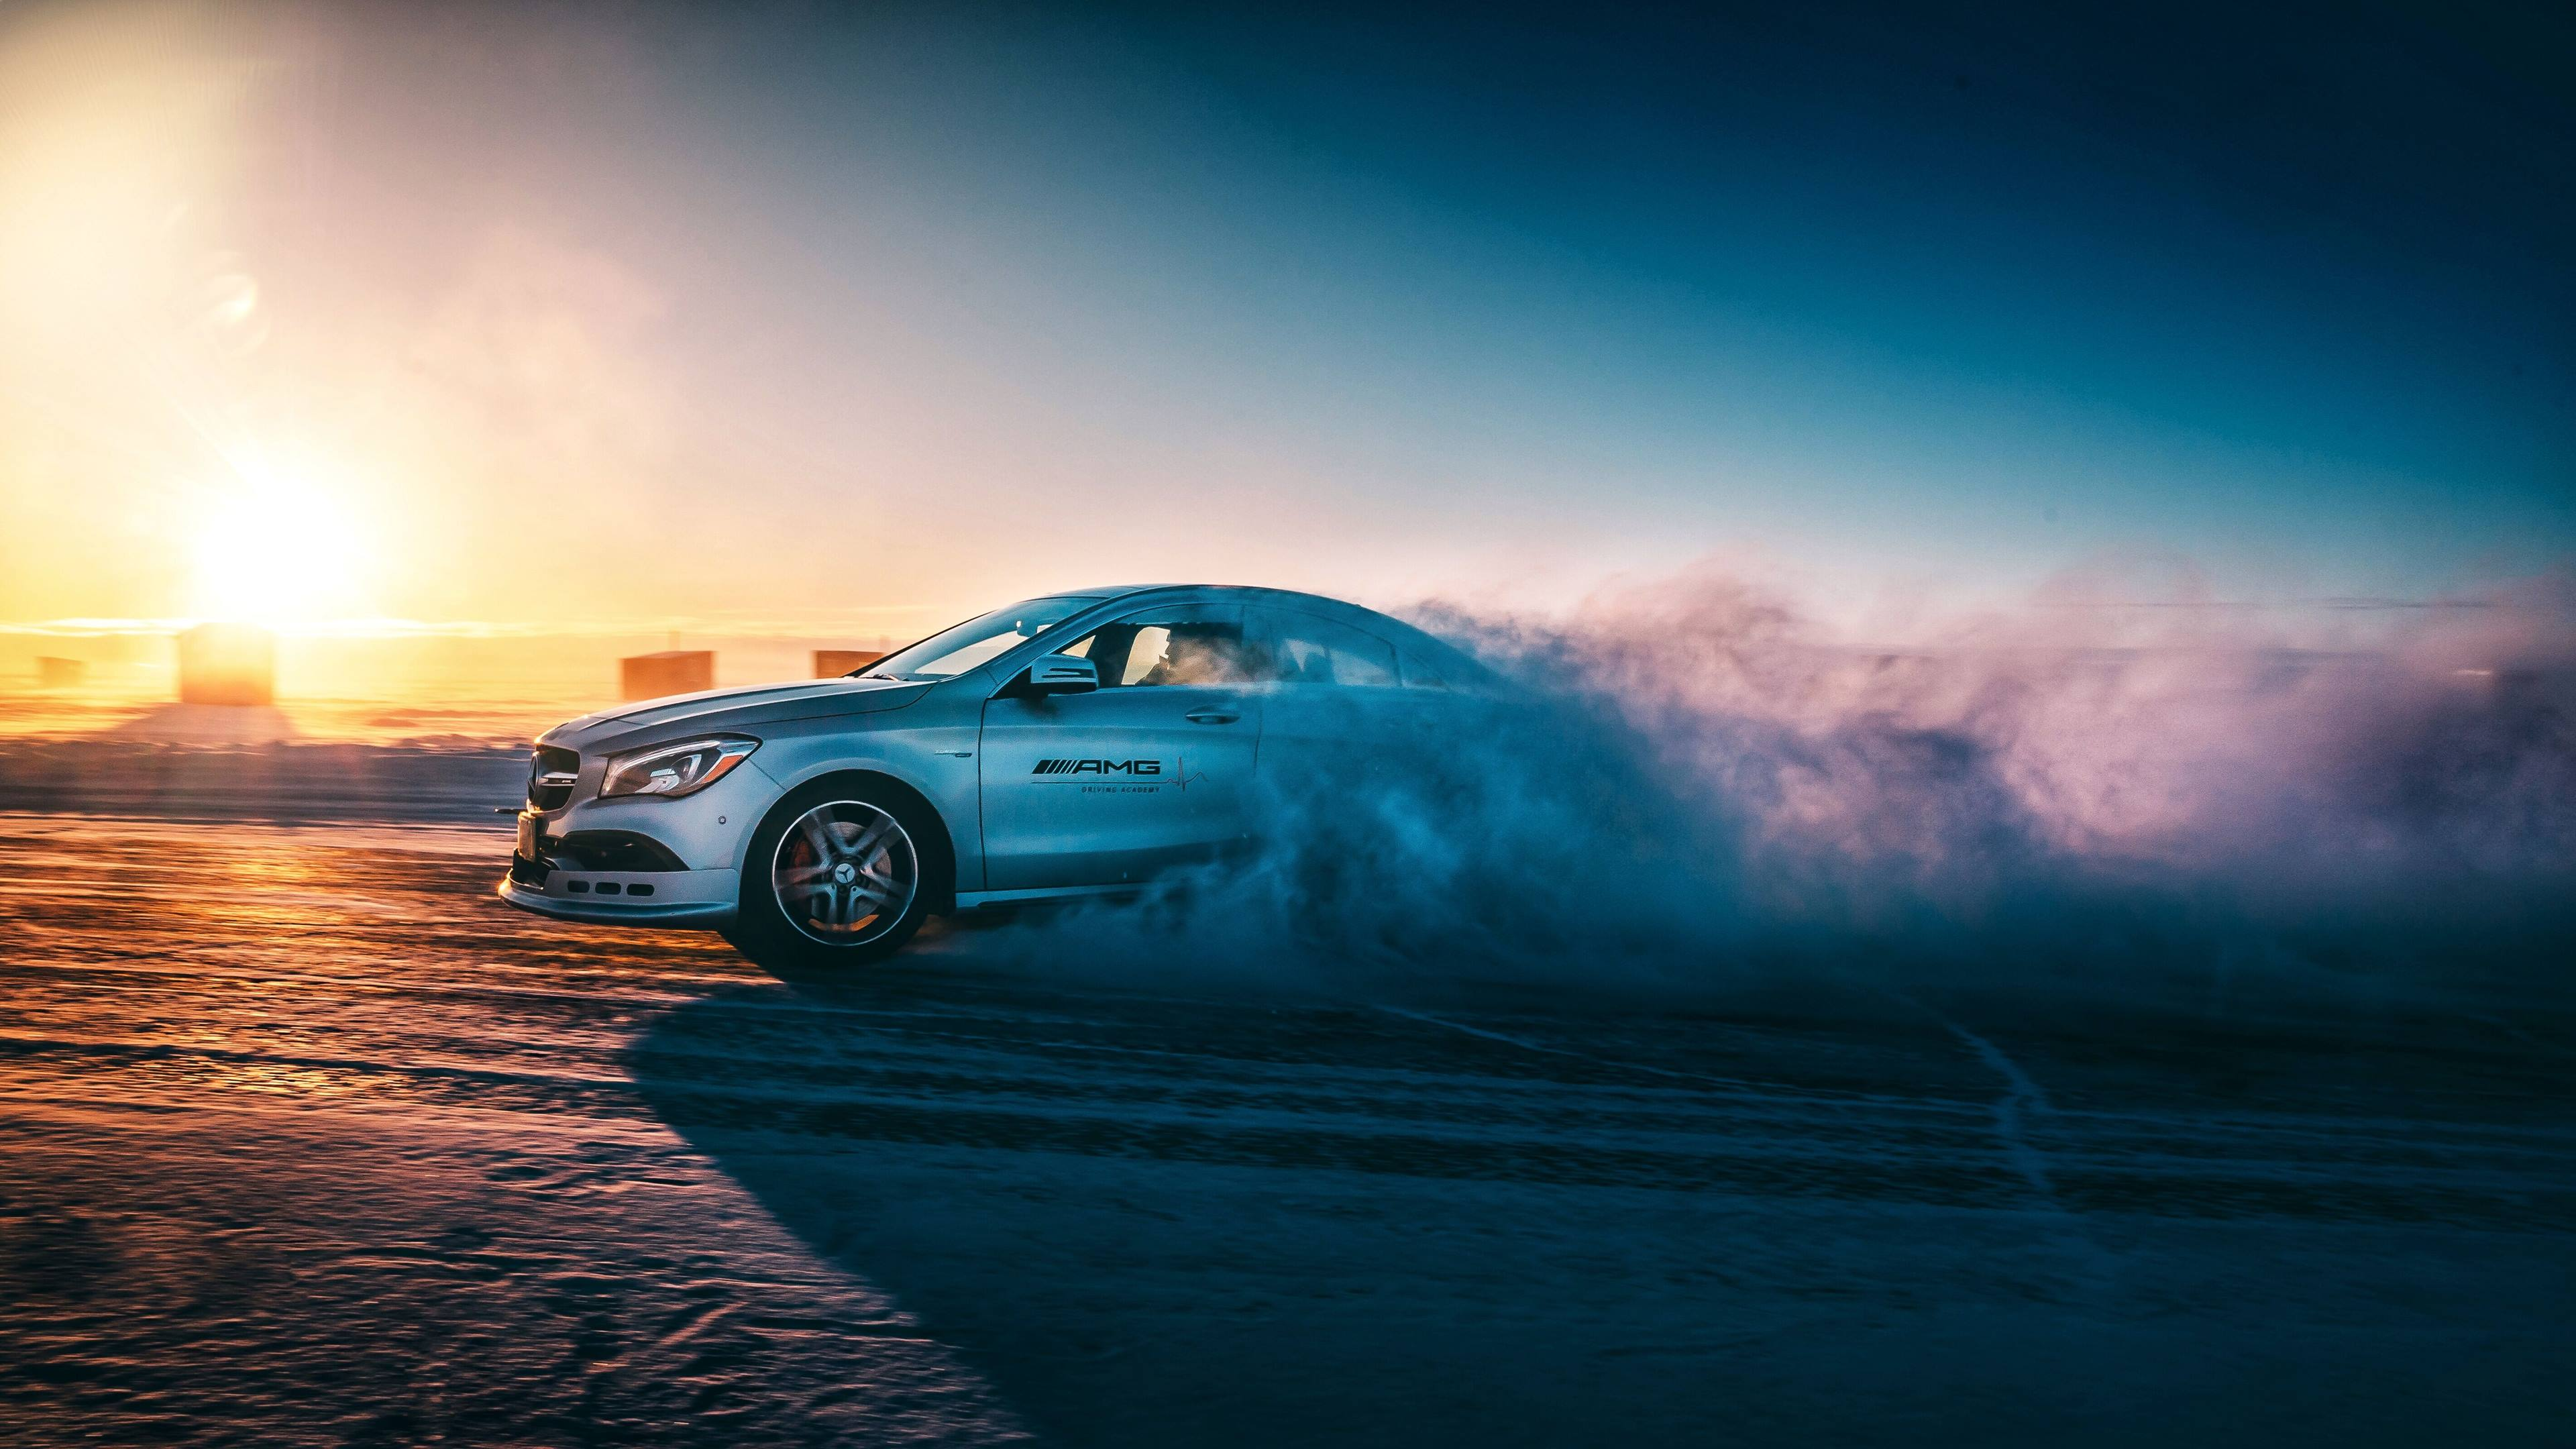 Mercedes-AMG snow drifting